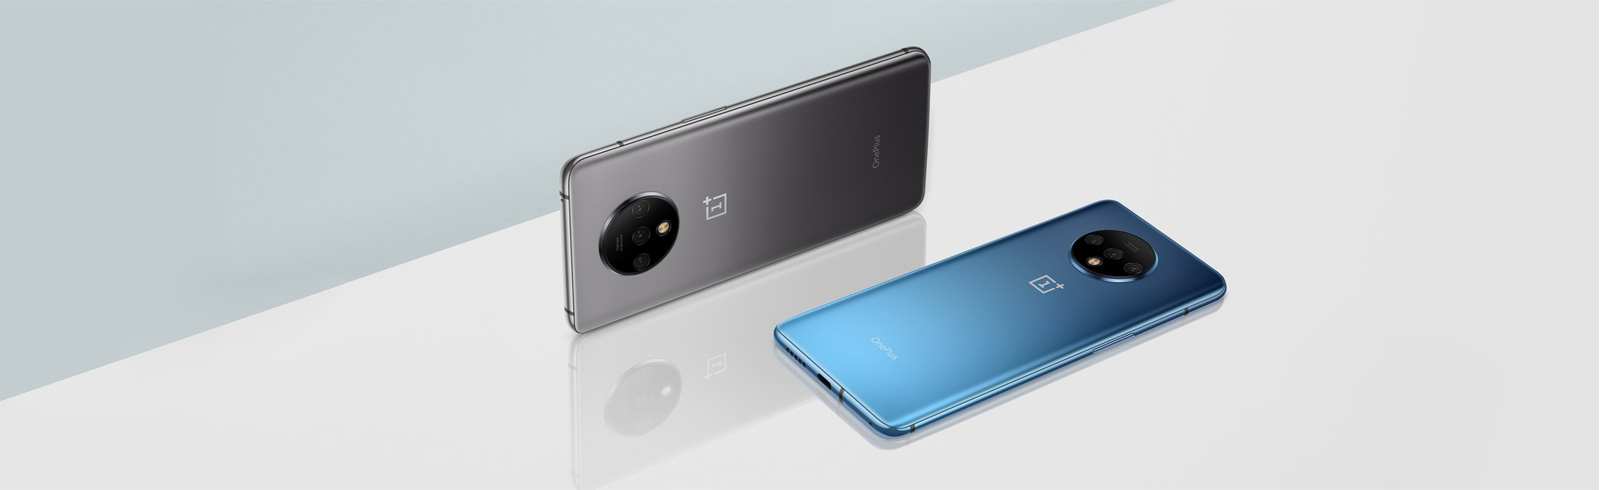 OnePlus 7T is official with a 90Hz Fluid AMOLED display and Warp Charge 30T